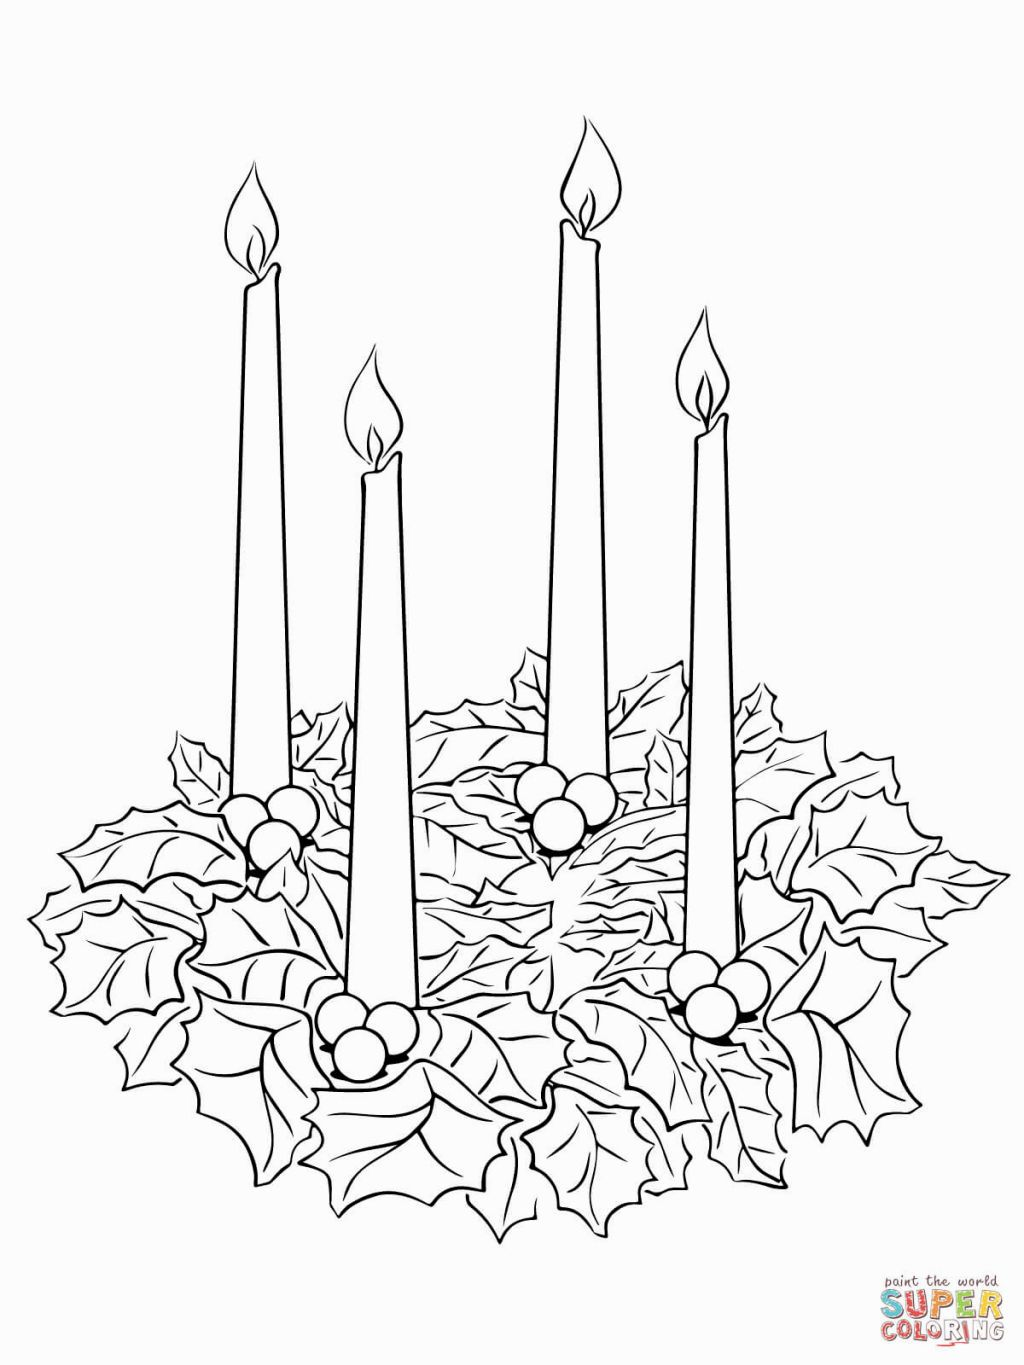 Advent Wreath Coloring Sheet Advent Coloring Christmas Coloring Pages Wreath Printable